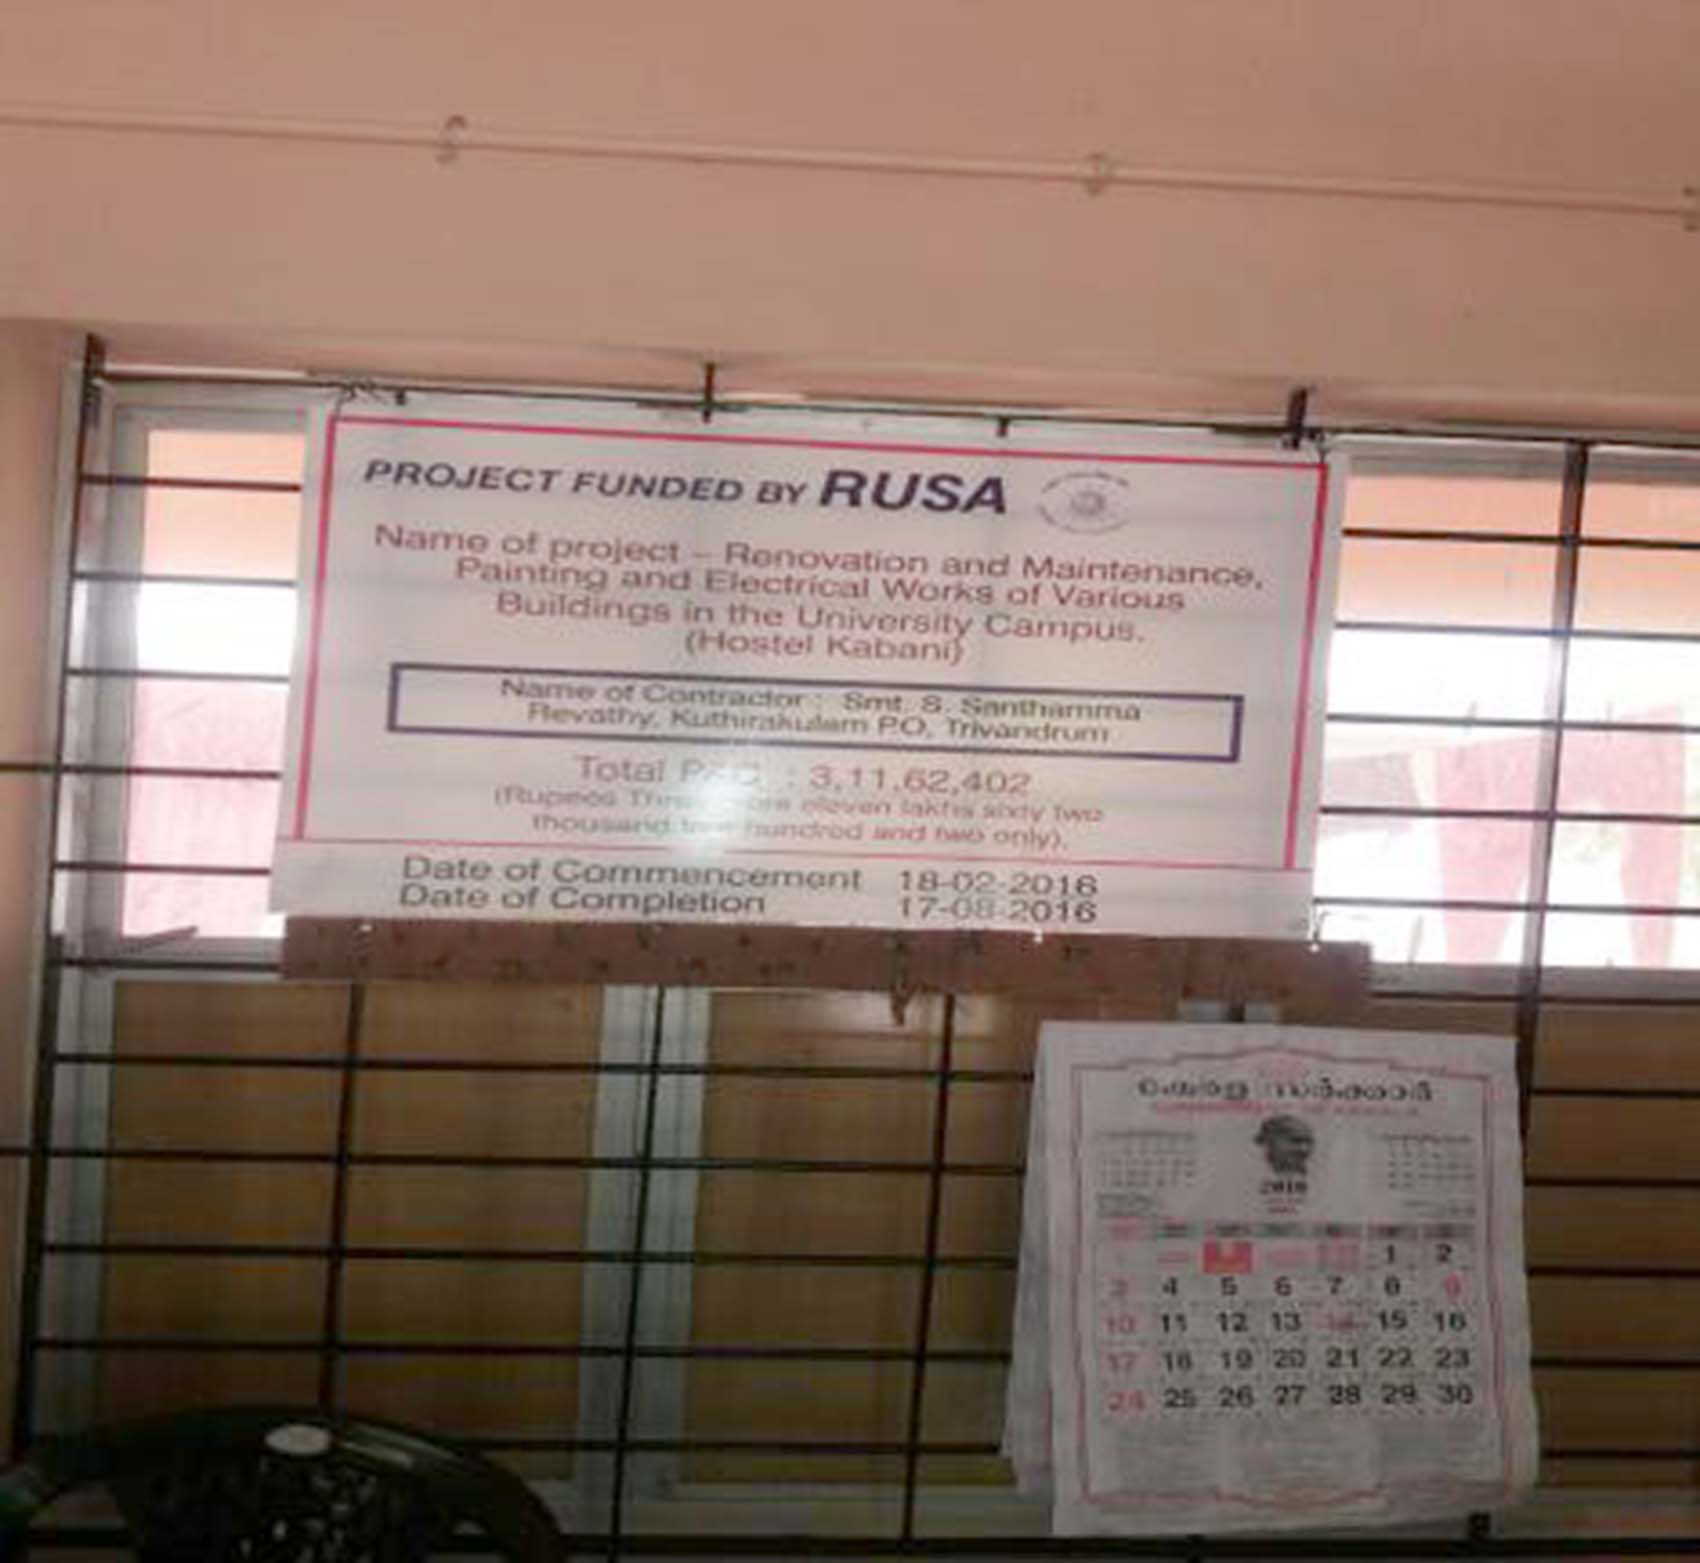 Funded by RUSA